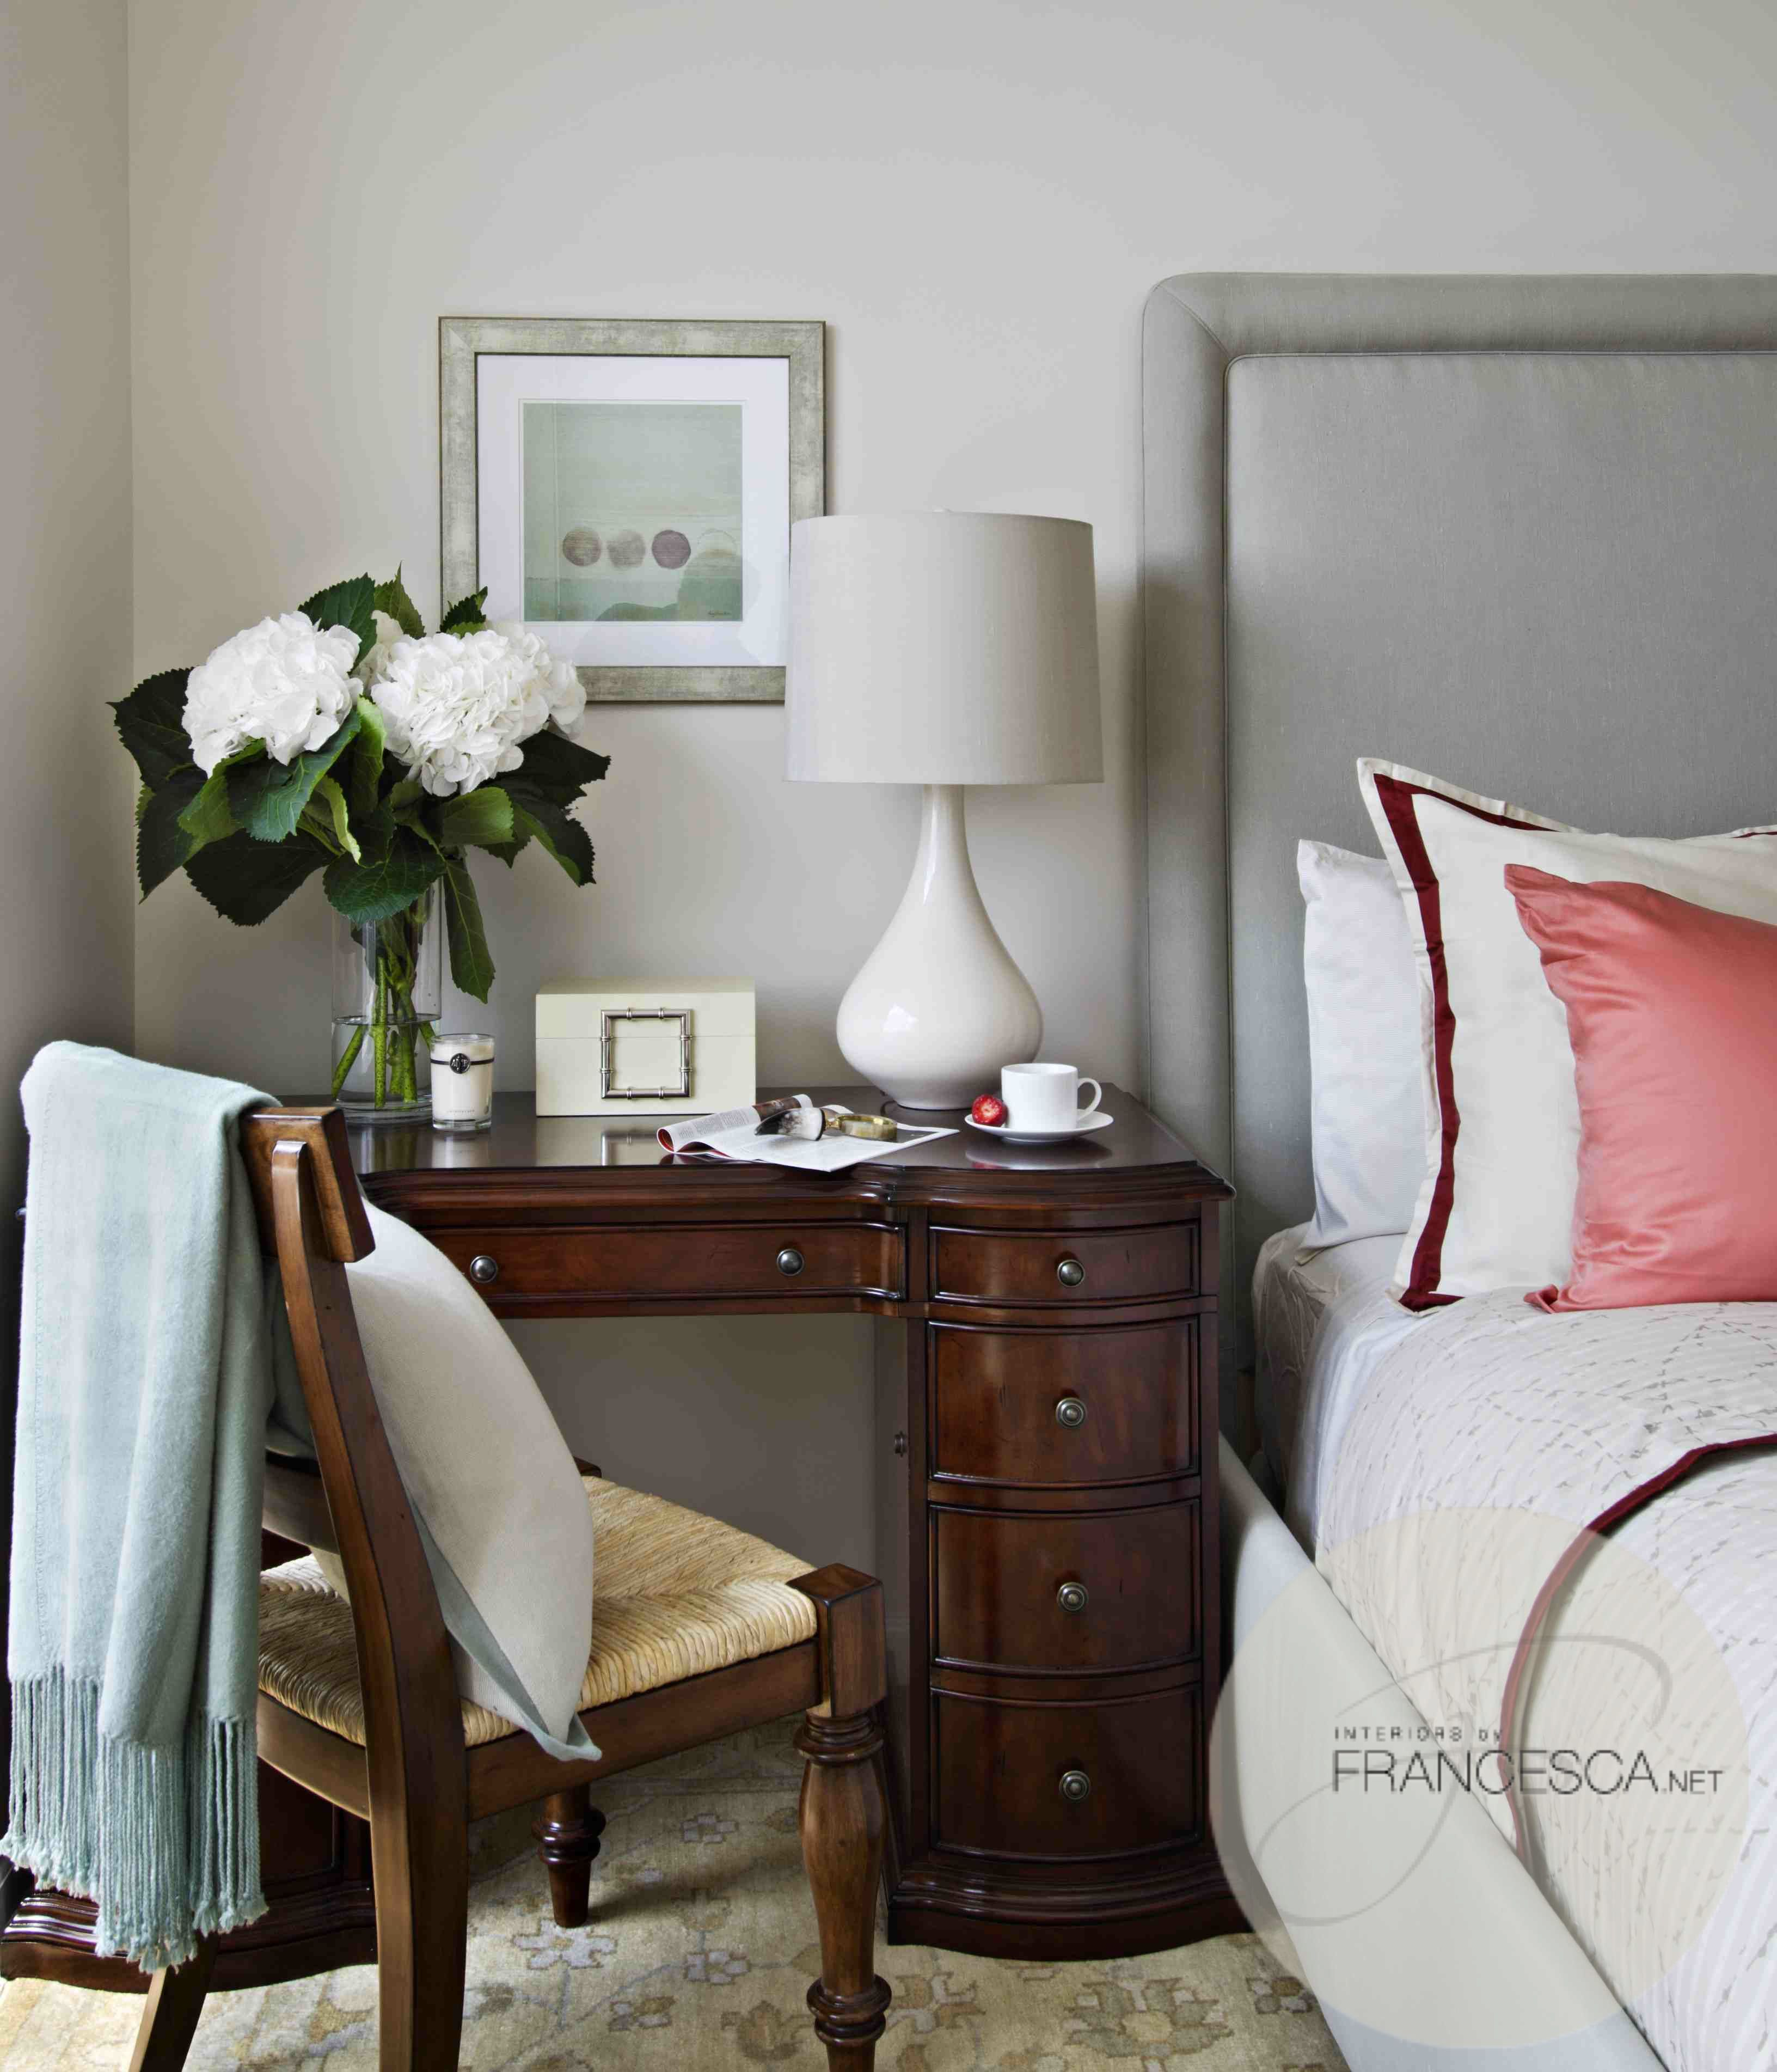 Bedside table decor pinterest - Even If Your Room Is Small You Can Create An Office Area Simply By Using A Desk As A Bedside Table Bonus See 10 Double Duty Nightstands